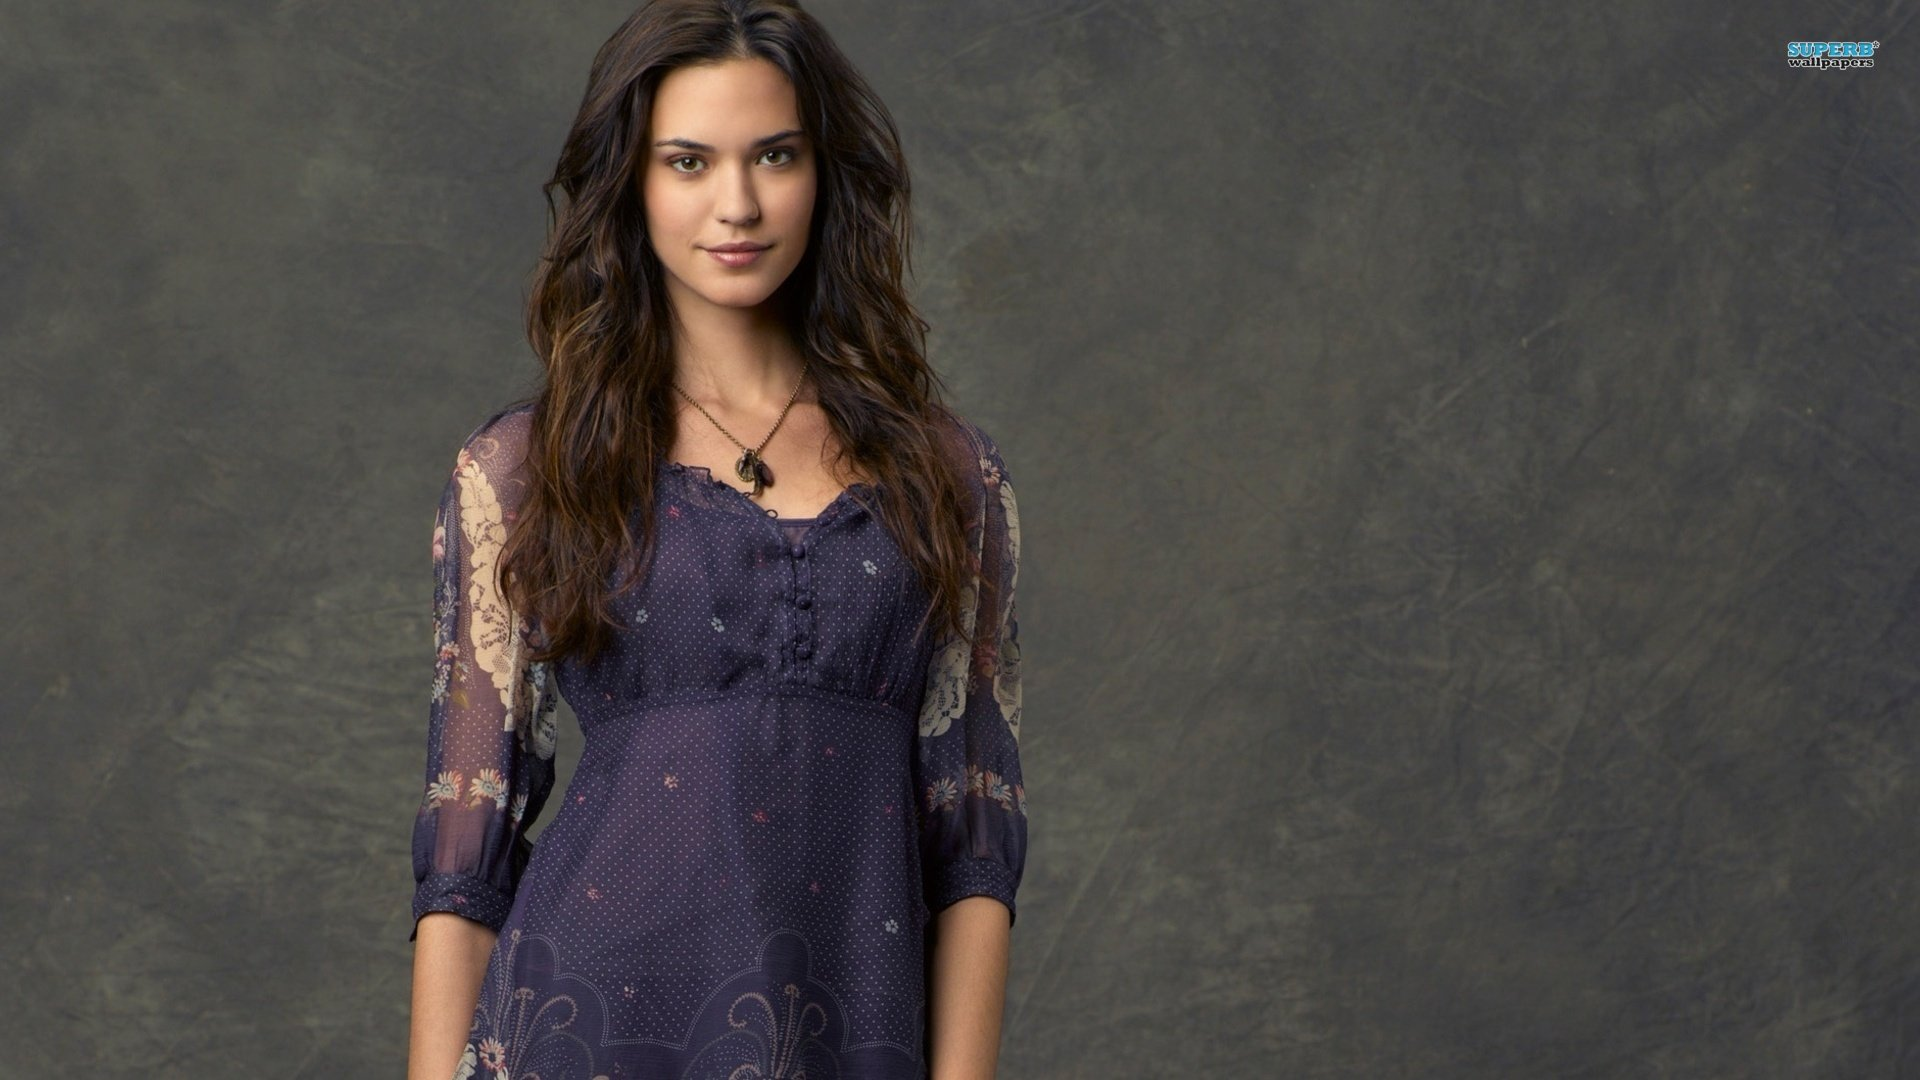 Download 1080p Odette Annable computer background ID:56069 for free